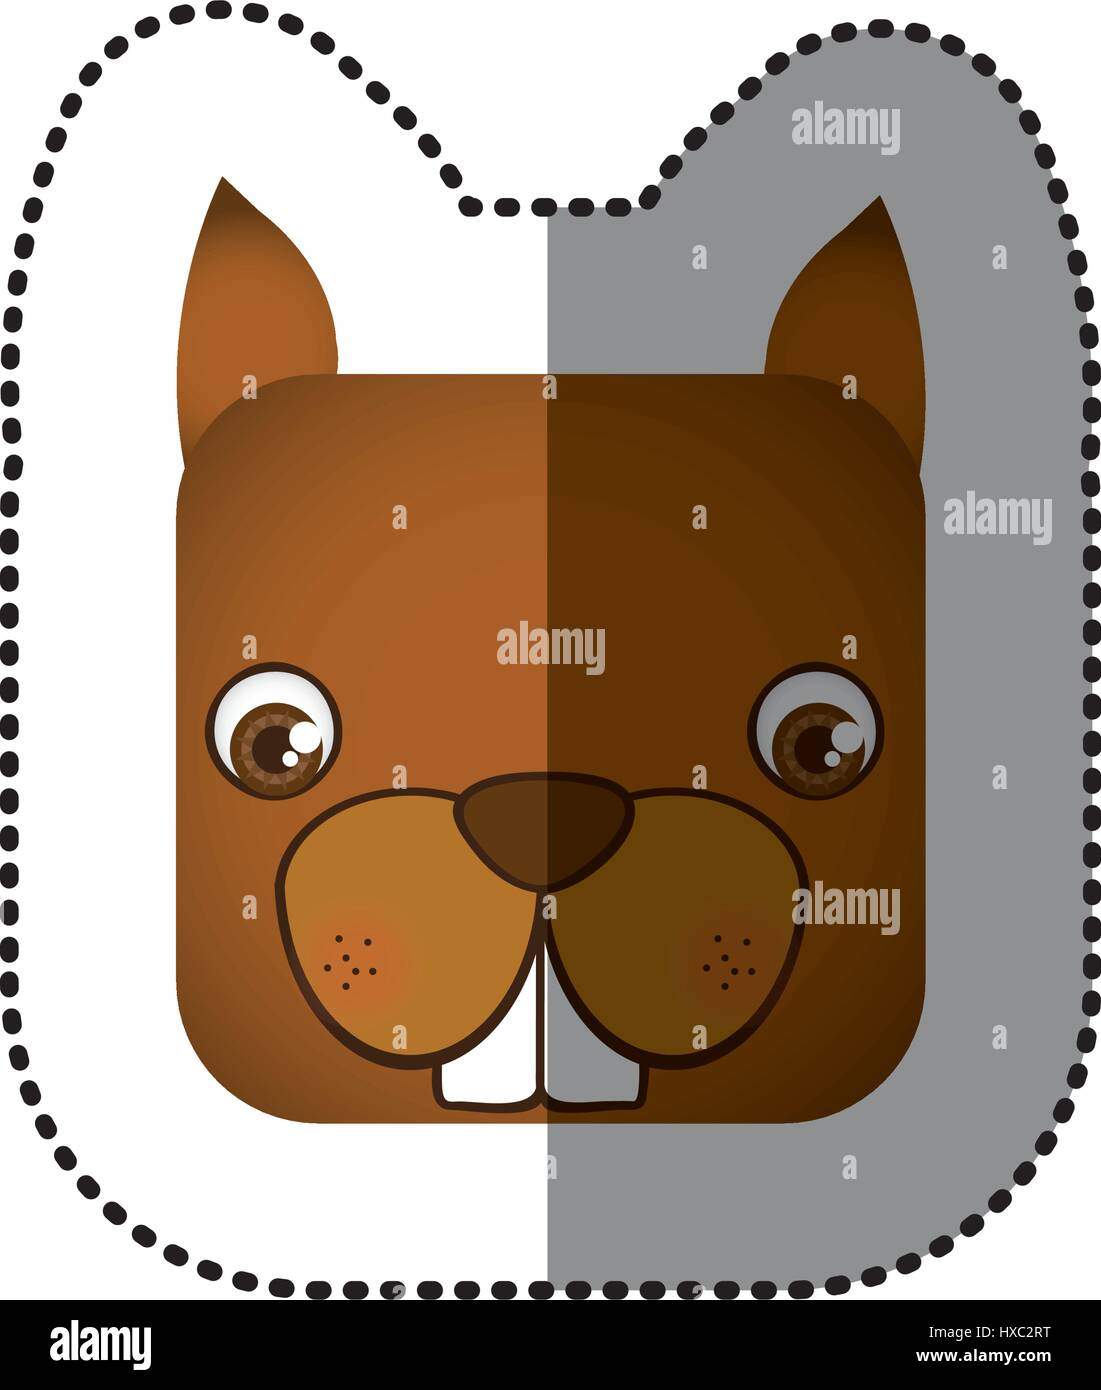 colorful face sticker of squirrel in square shape - Stock Image